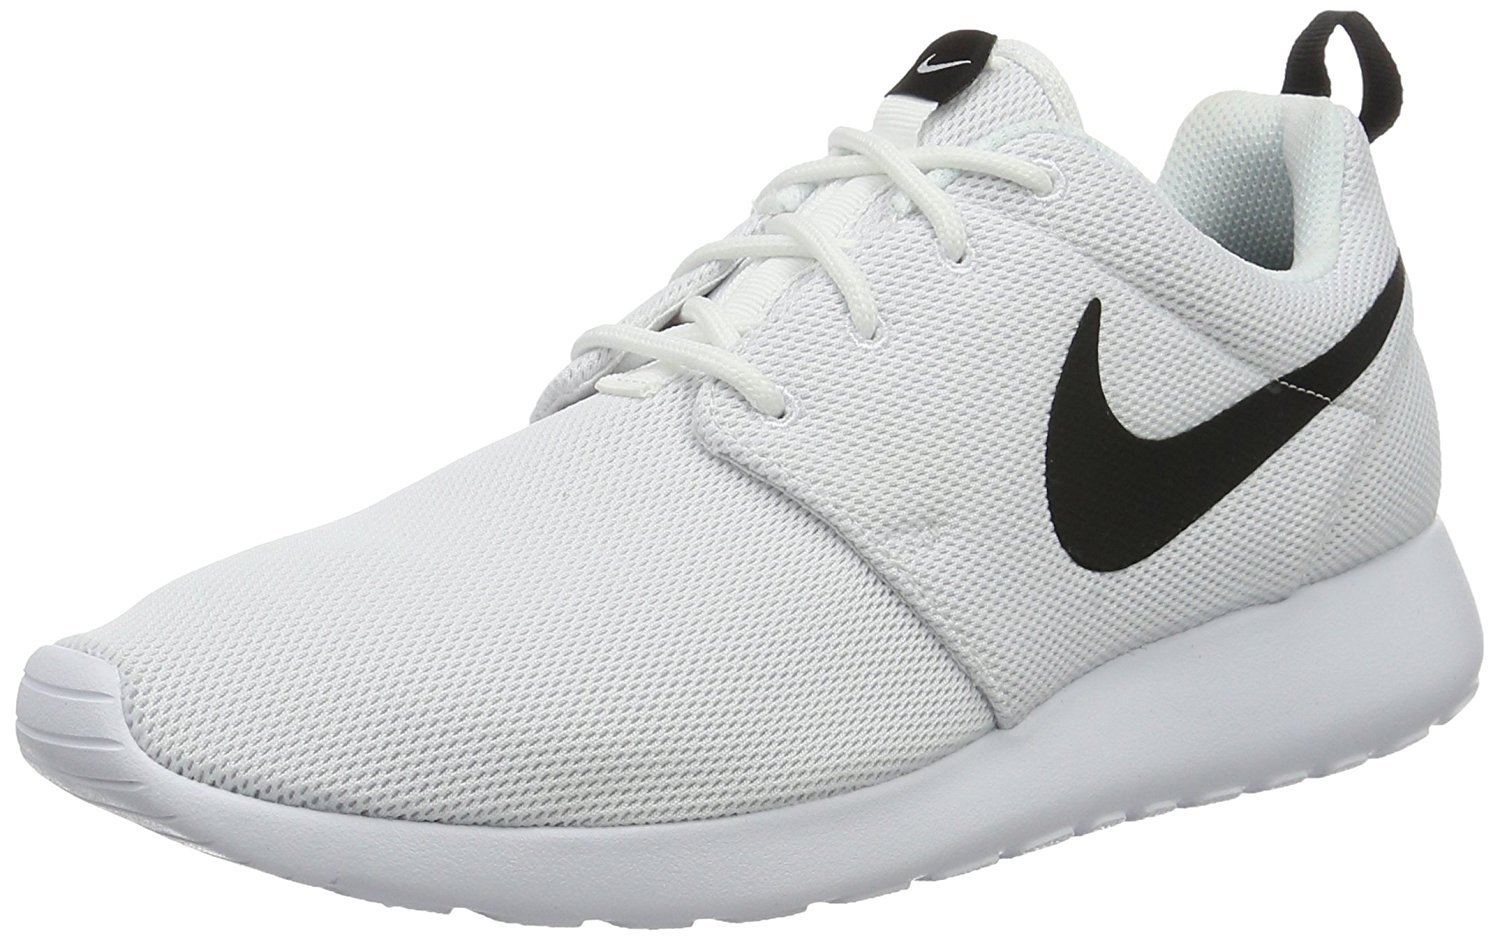 f650be1c2e57 Nike-Roshe-One-Trainers-Women-s-Running-Shoes thumbnail